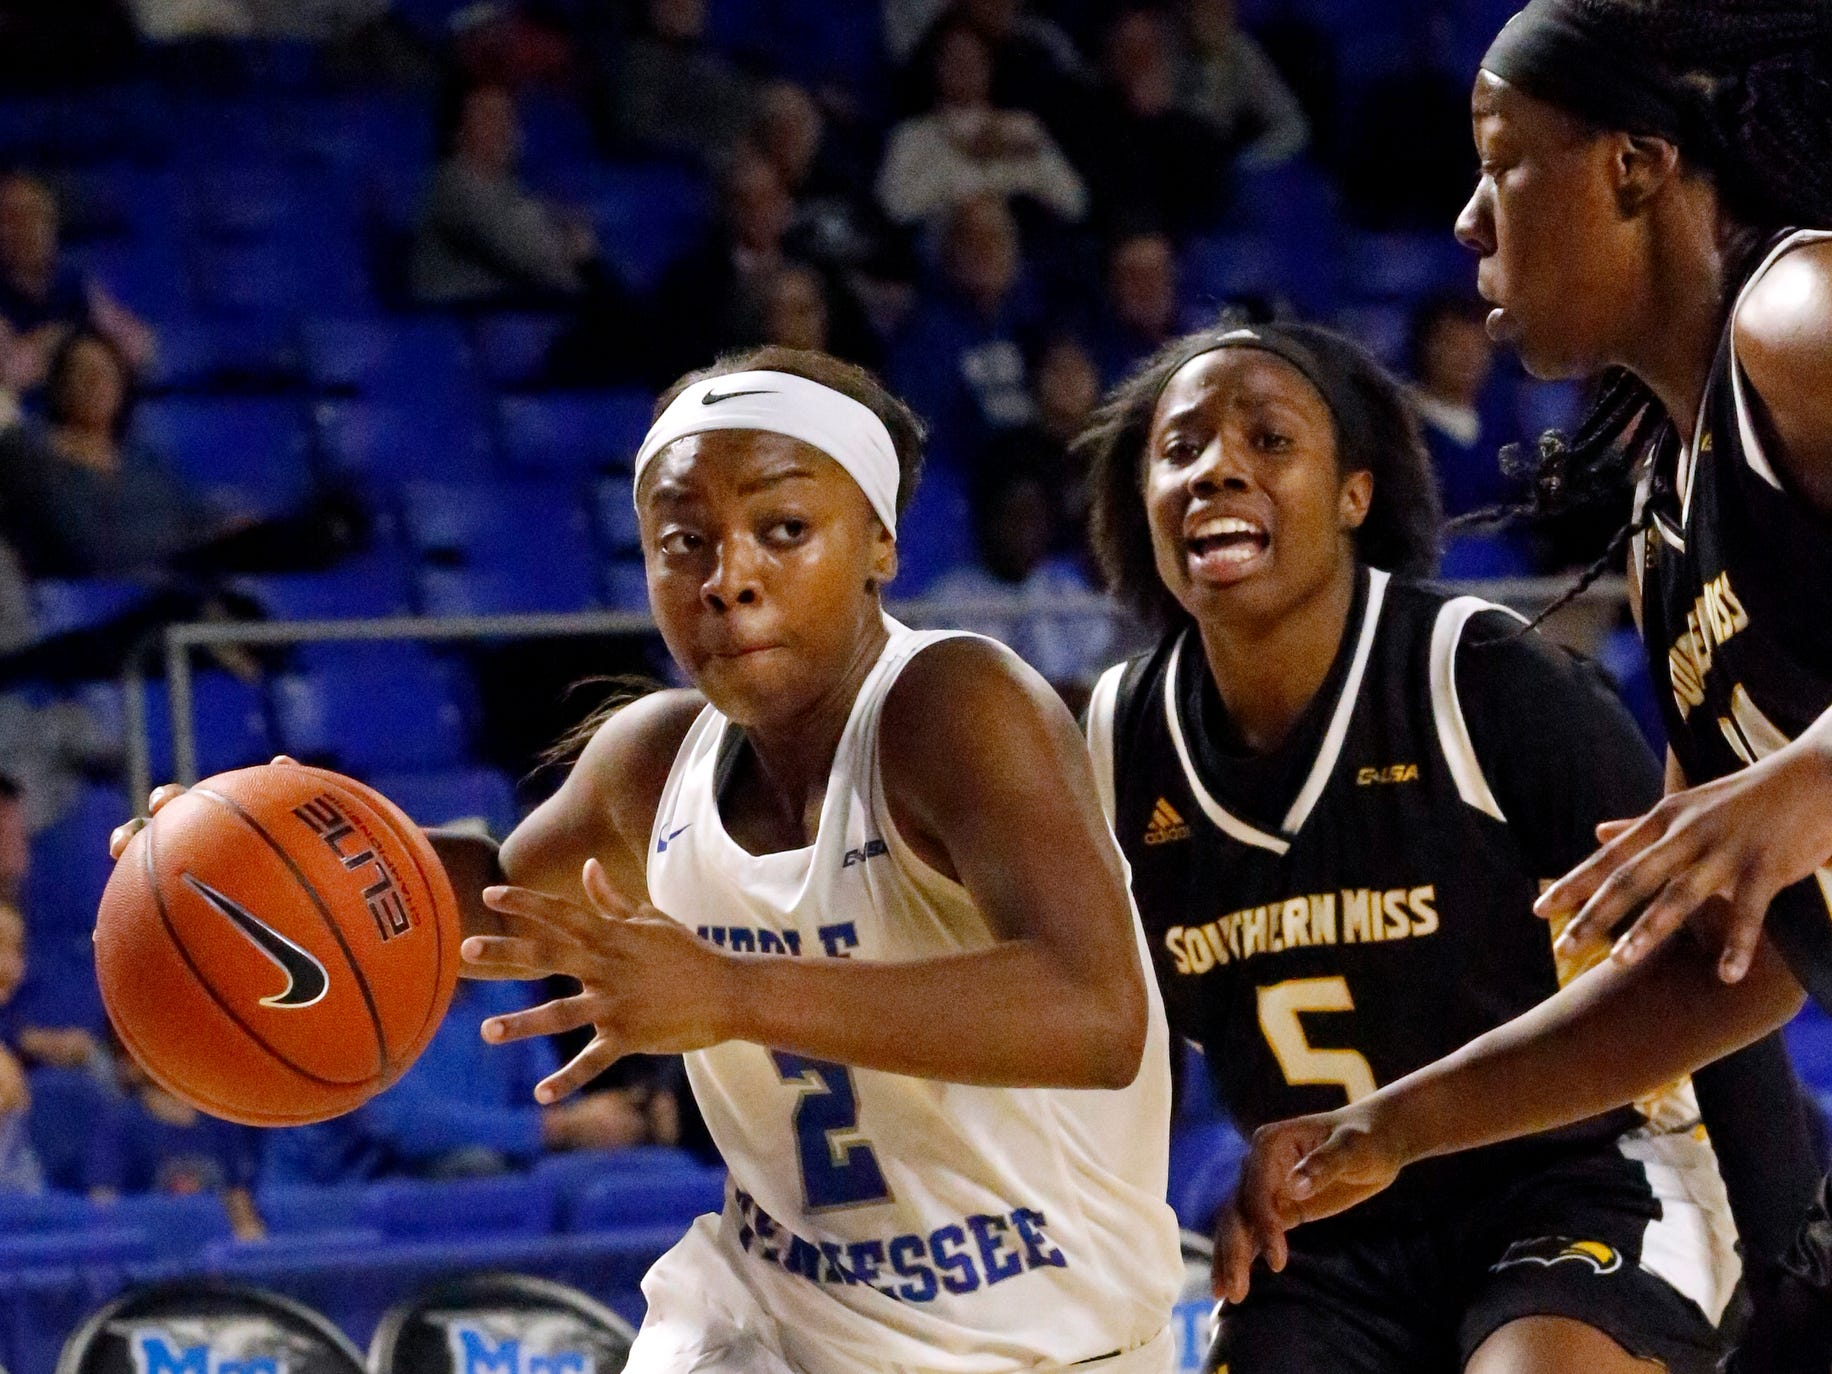 MTSU's guard Taylor Sutton (2) pushes toward the basket around Southern Miss players on Thursday Jan. 10, 2019.